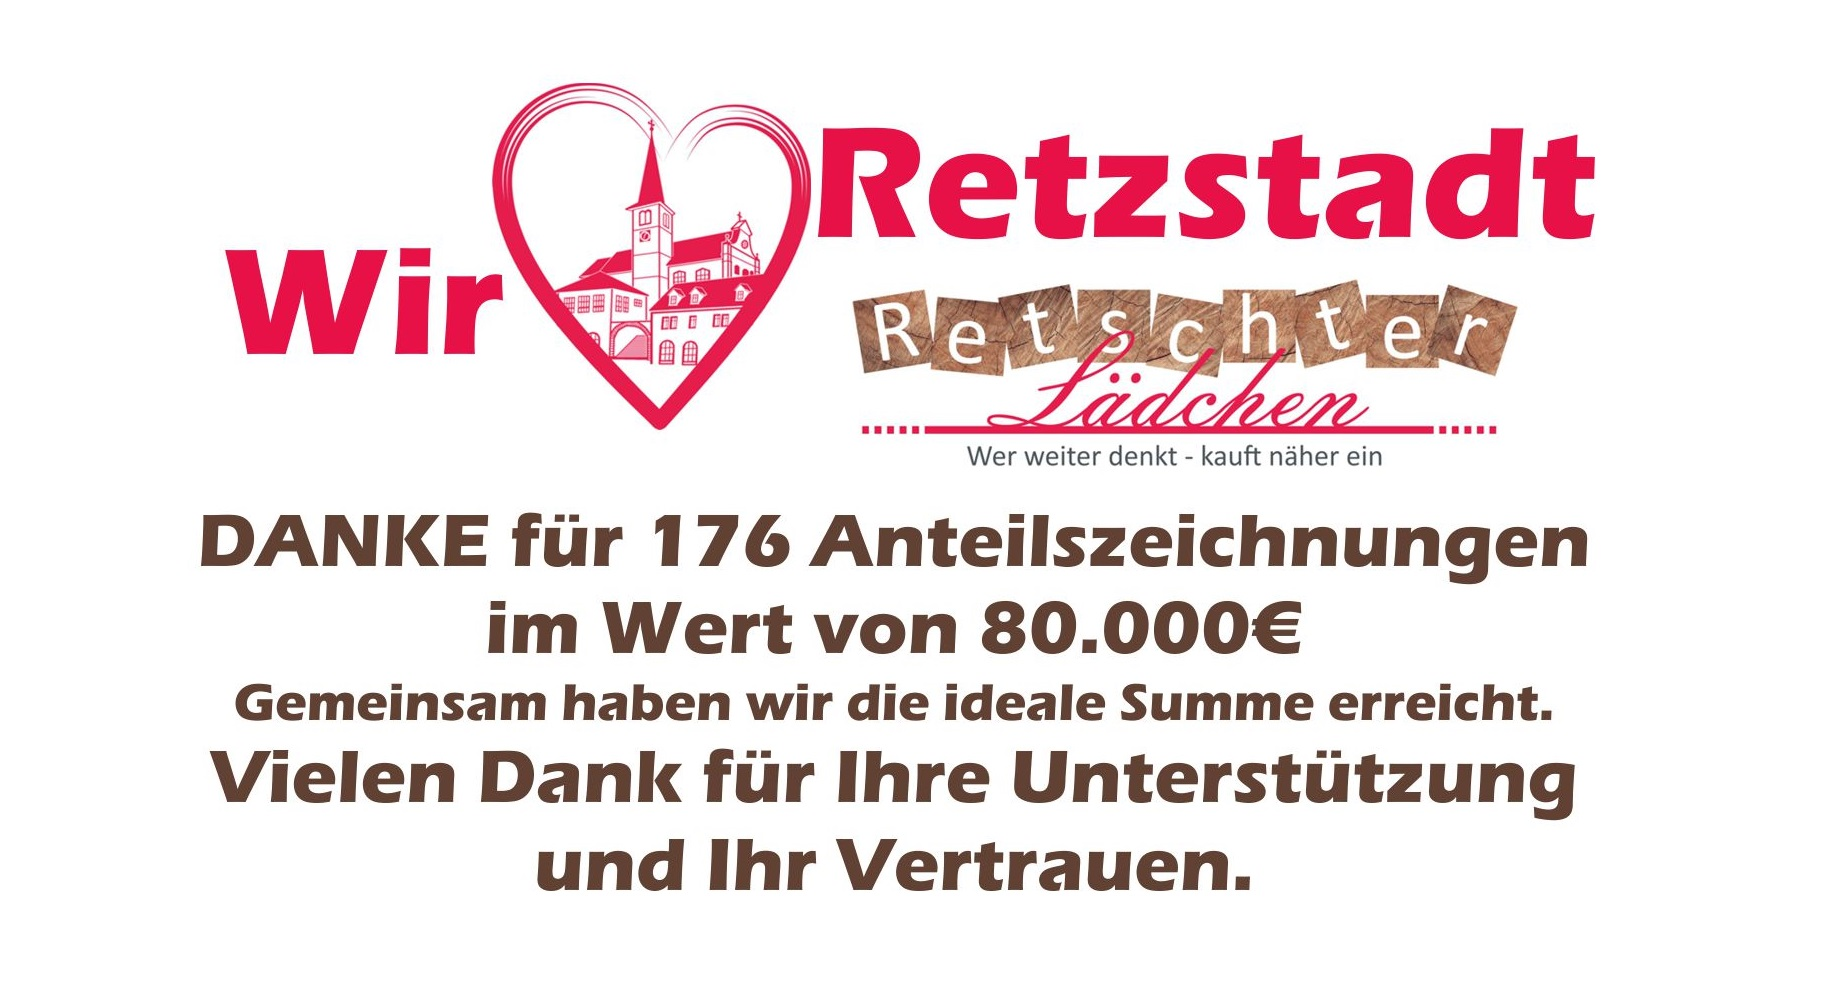 Initiative Dorfladen Retzstadt